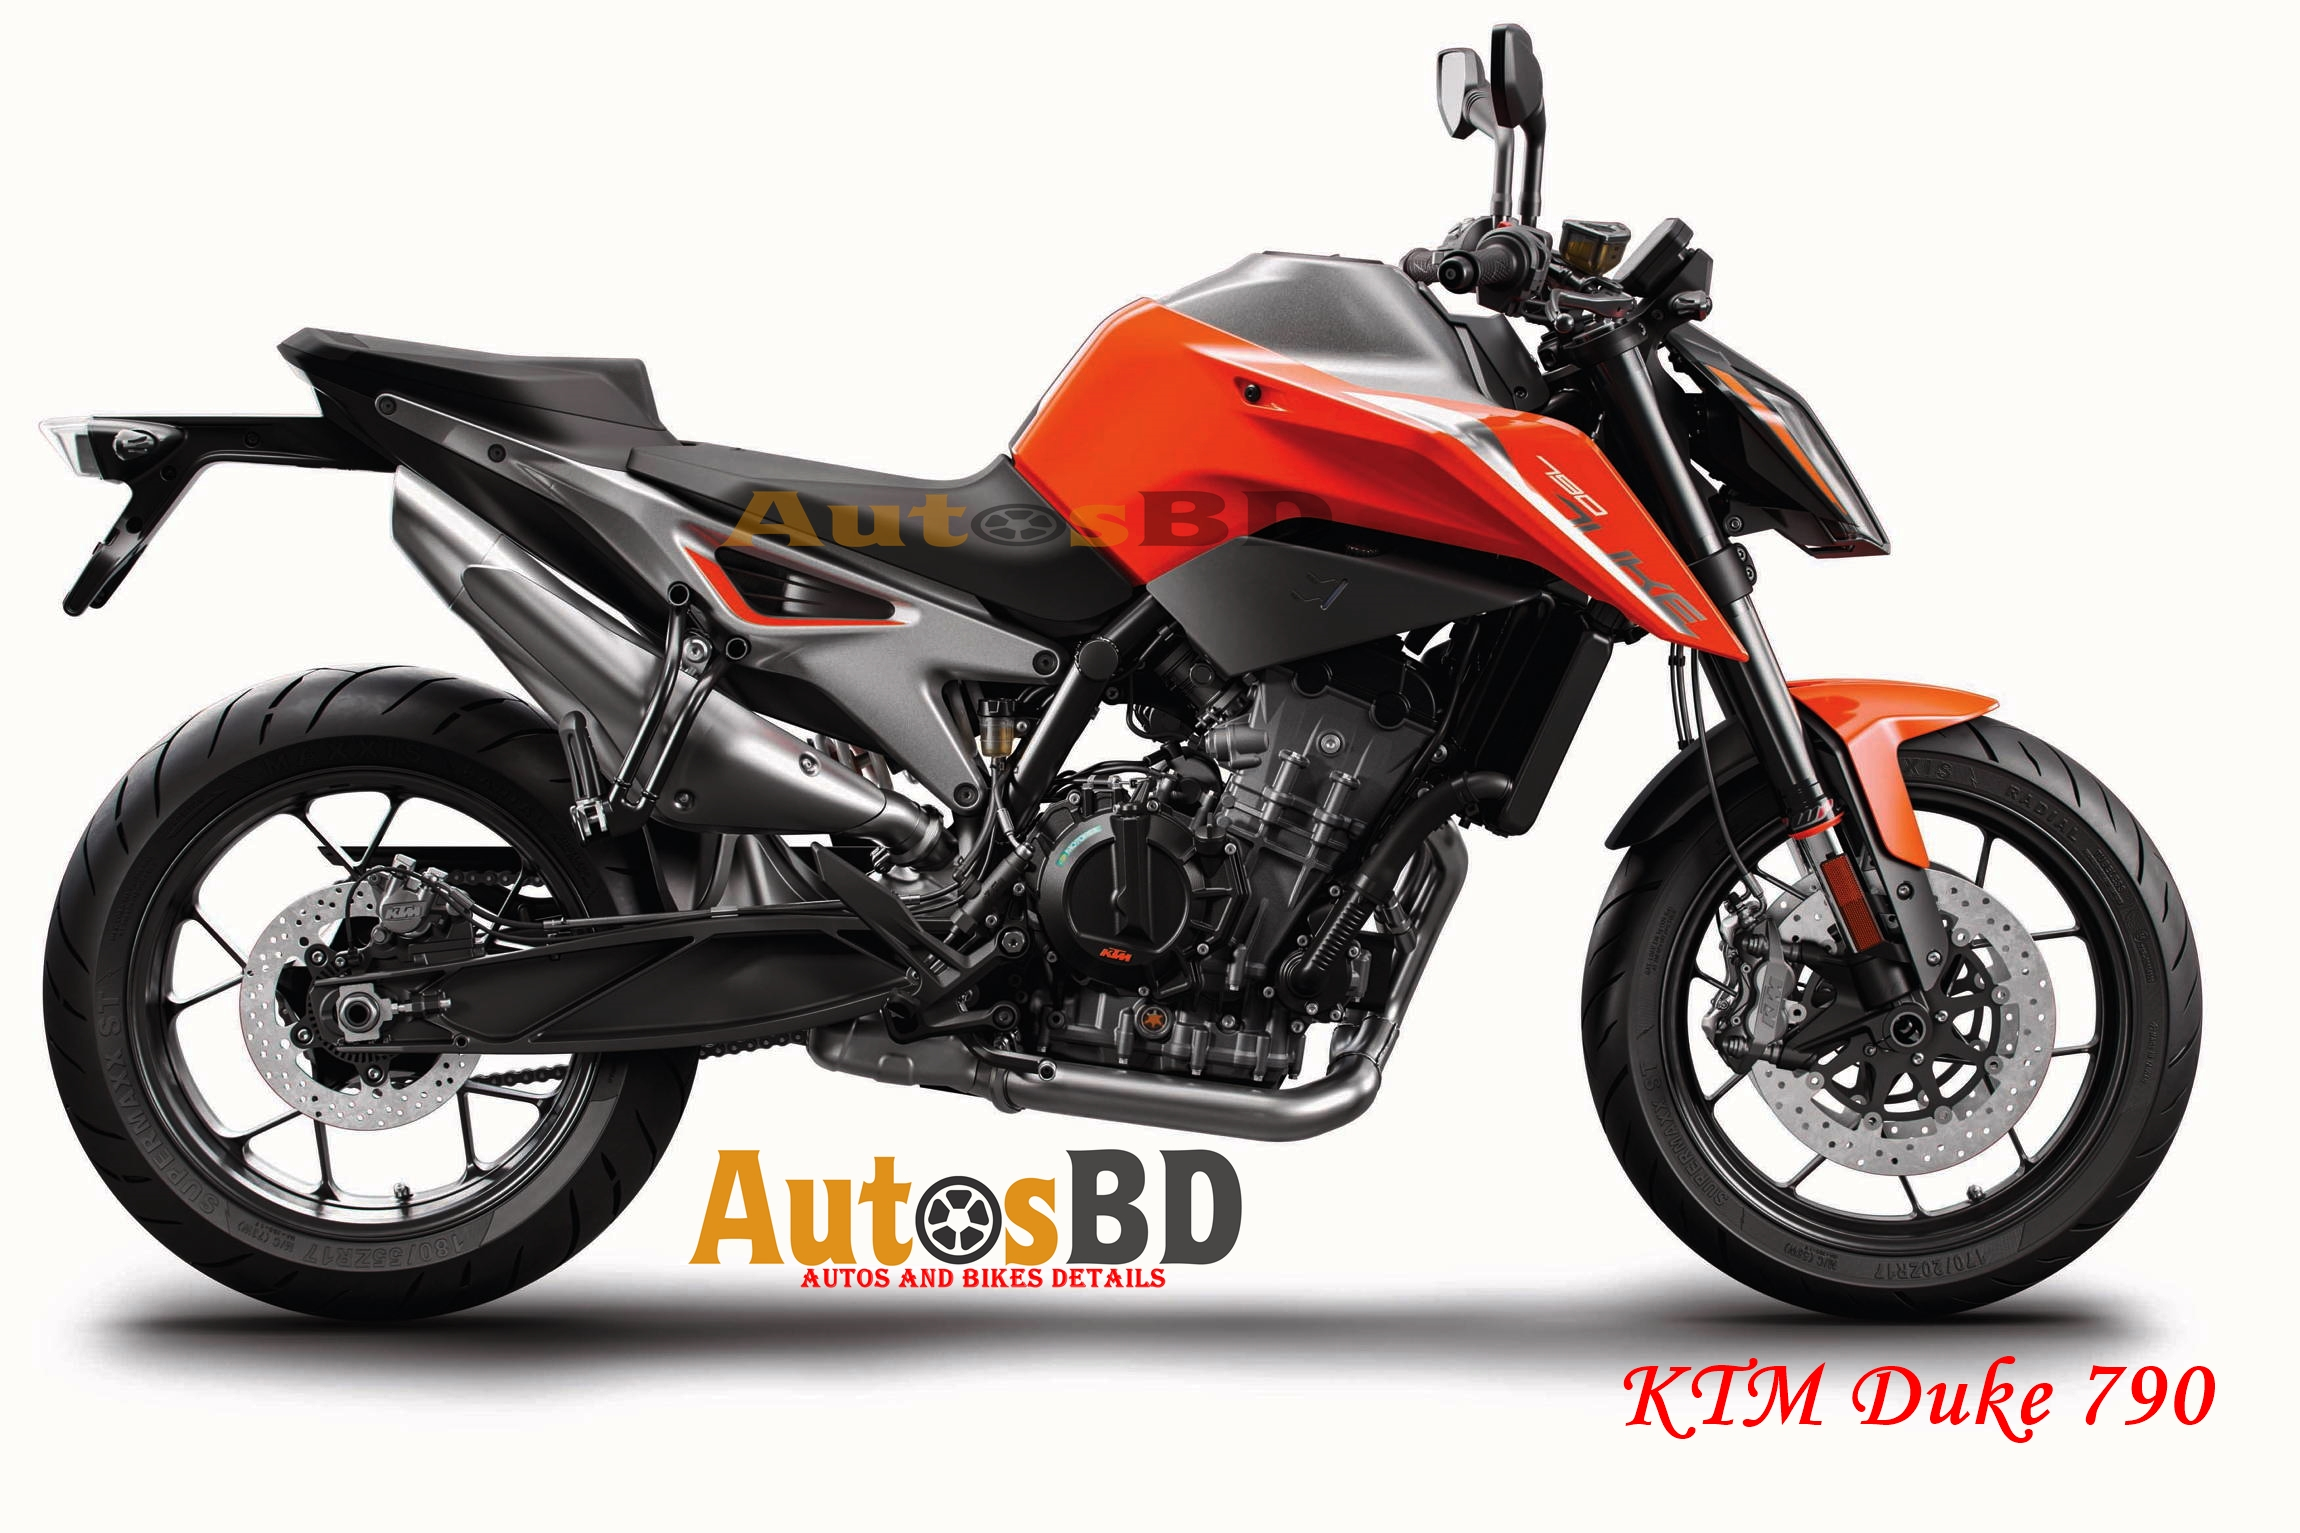 KTM Duke 790 Motorcycle Specification